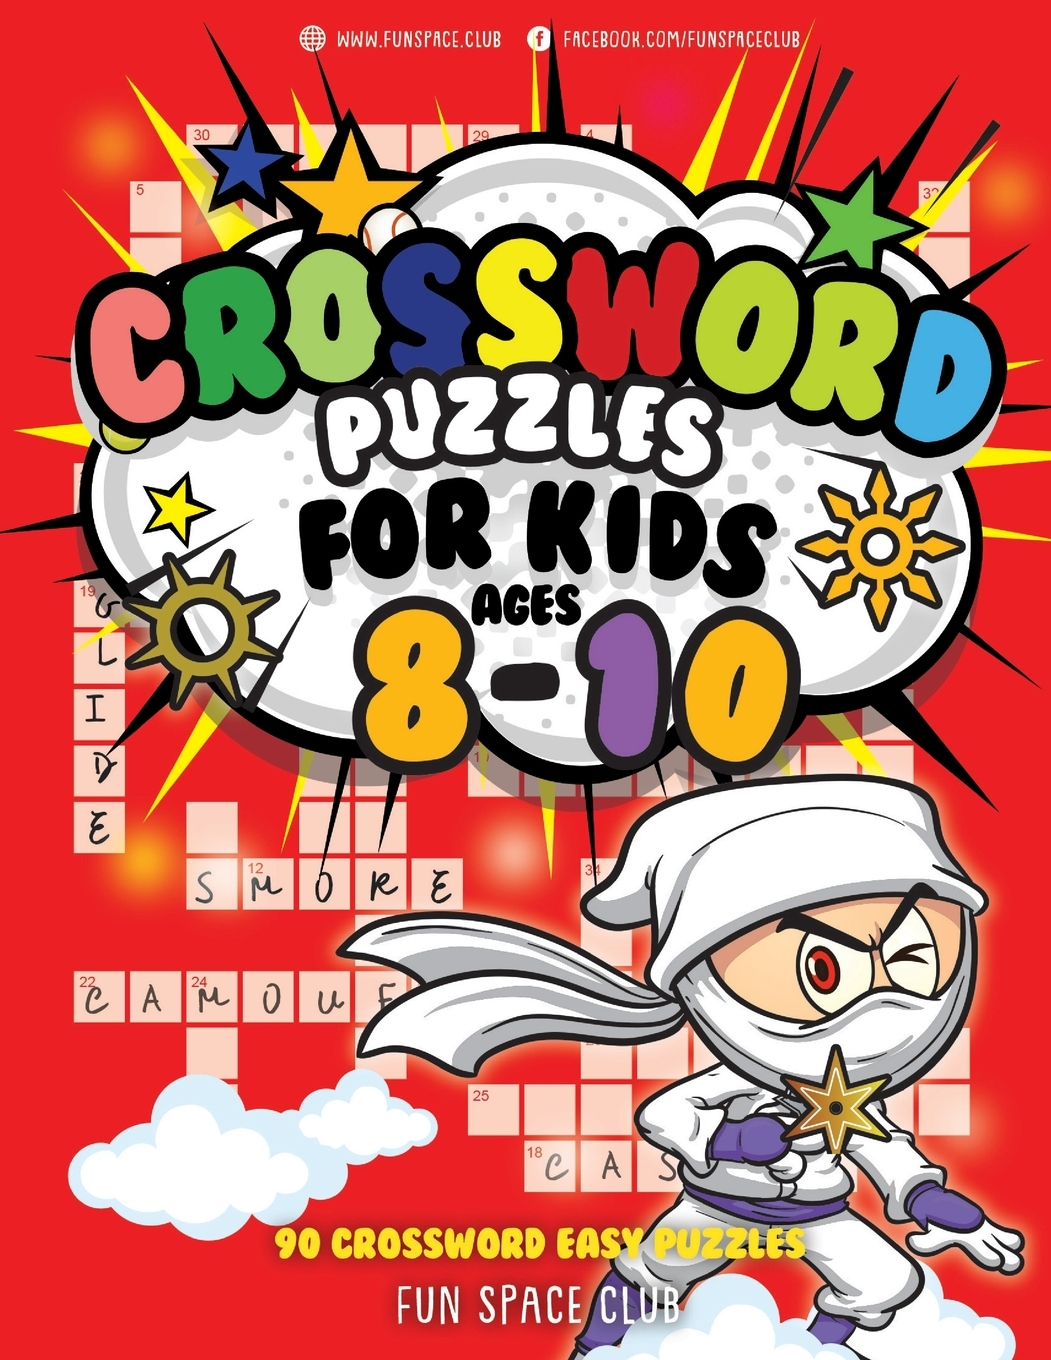 Crossword Puzzles For Kids Ages 8 10 90 Crossword Easy Puzzle Books Walmart Com Walmart Com